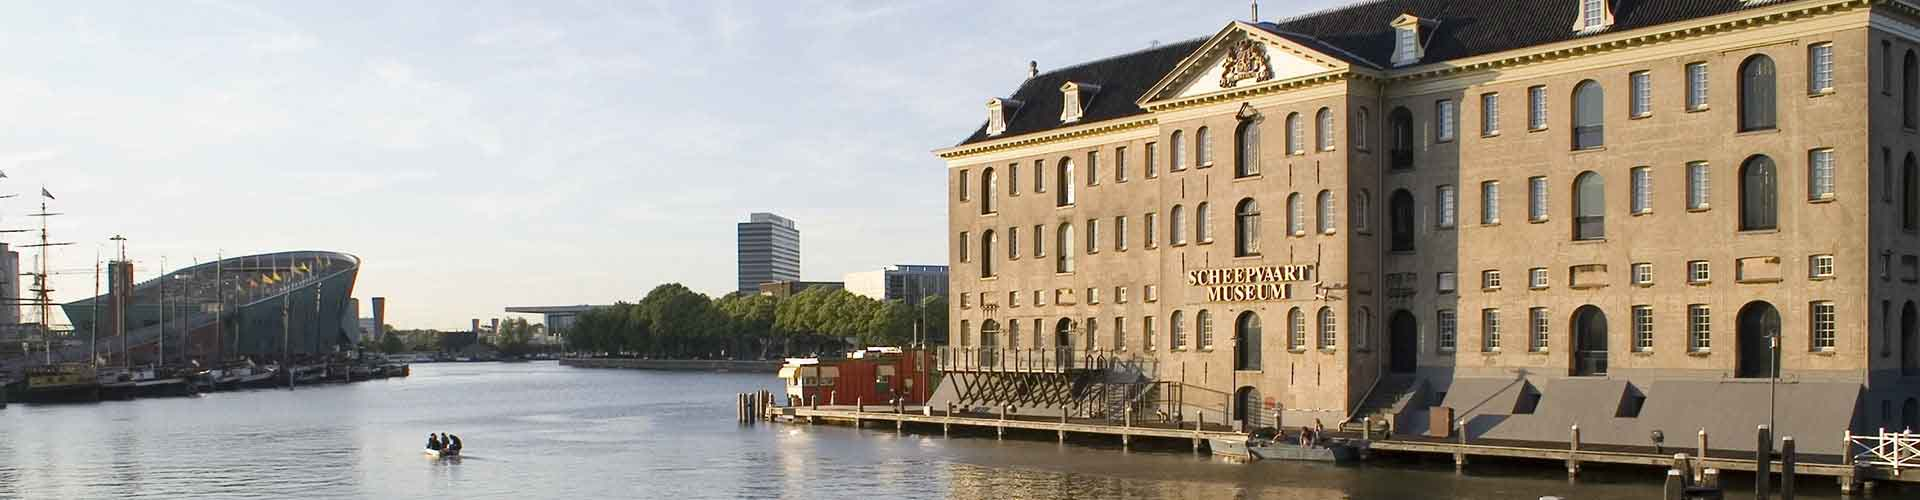 Amsterdam – Hostels close to Scheepvaartmuseum. Maps for Amsterdam, Photos and Reviews for each hostel in Amsterdam.